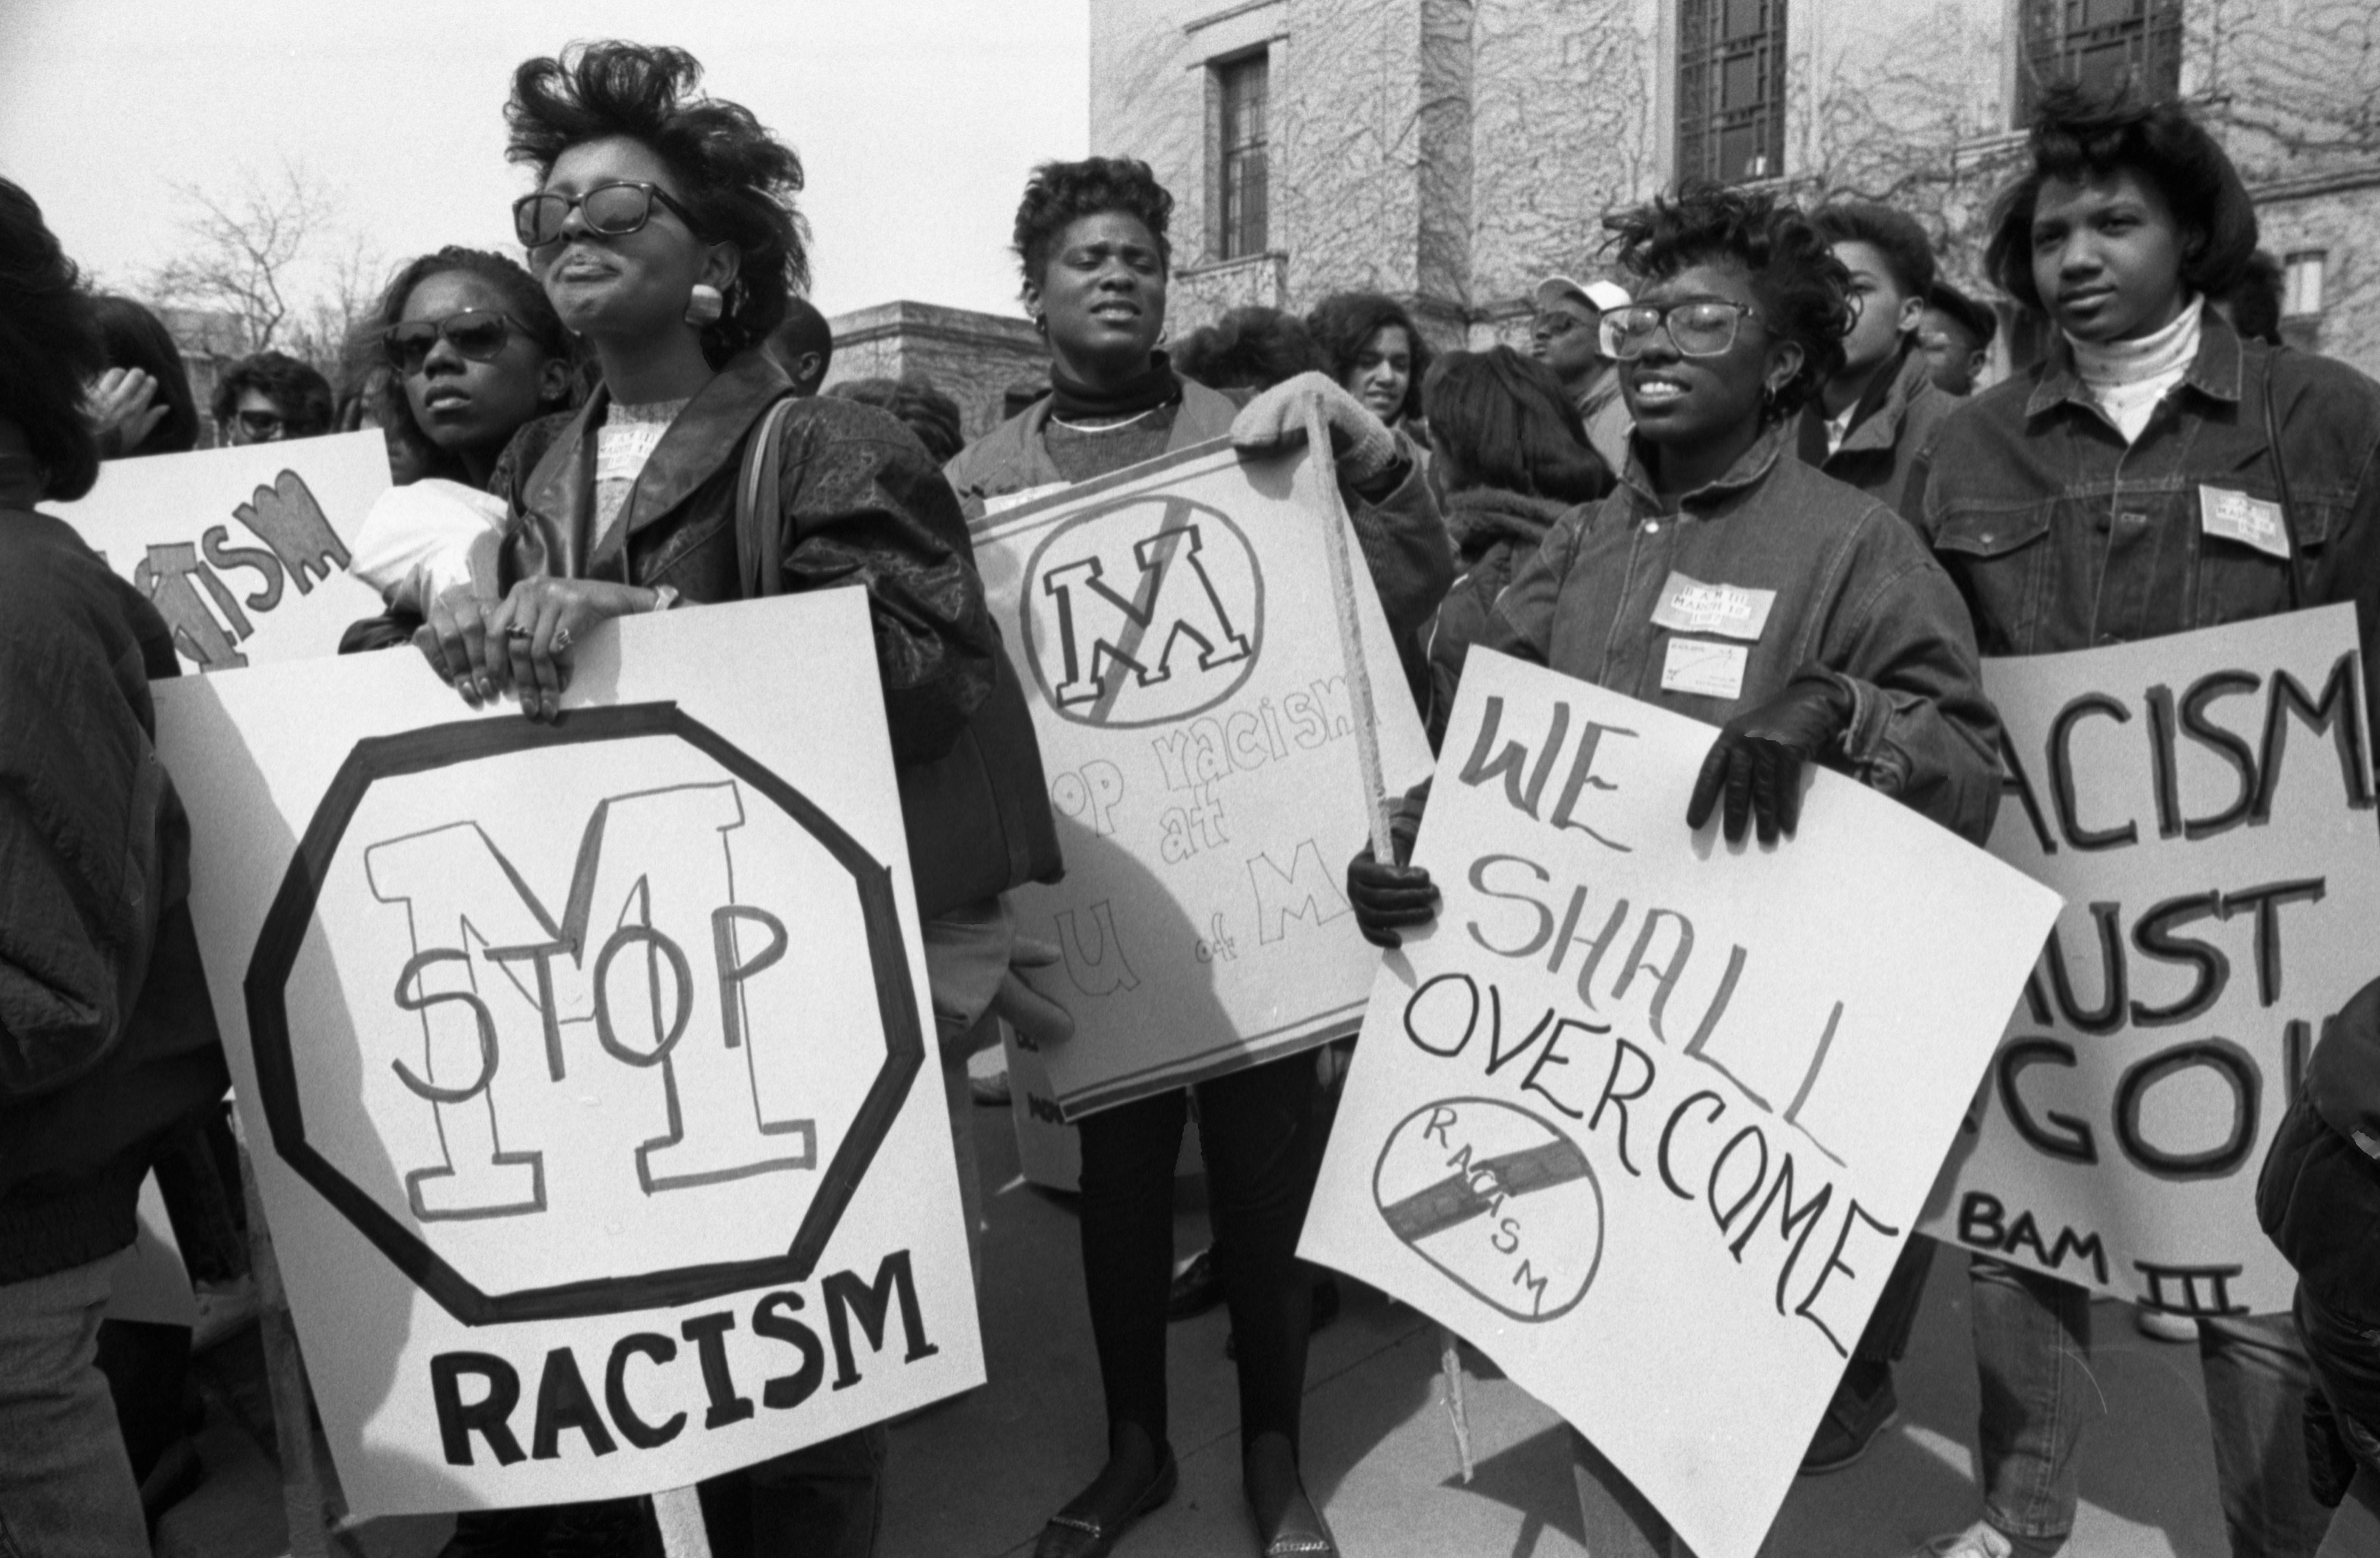 Black Action Movement III Protesters, March 18, 1987 image